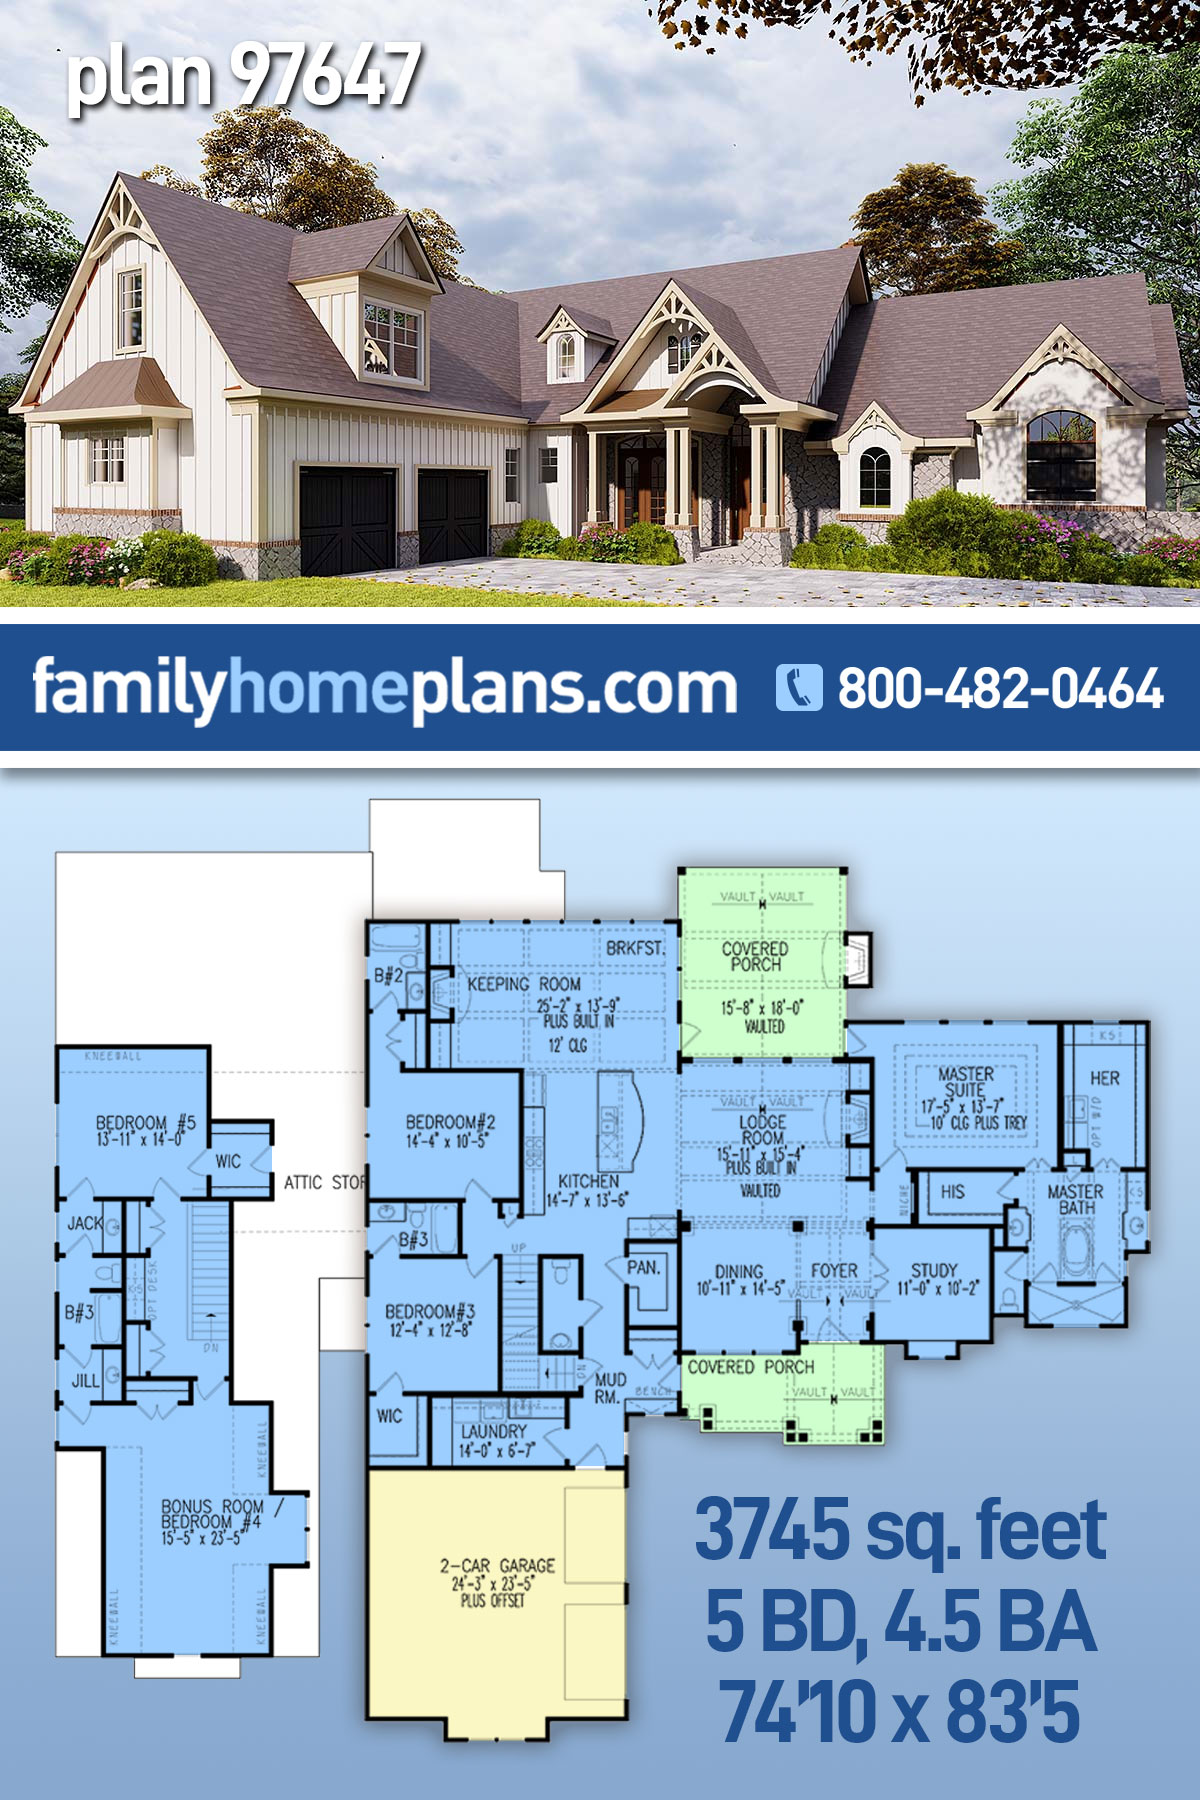 Country, Craftsman House Plan 97647 with 5 Beds, 5 Baths, 2 Car Garage